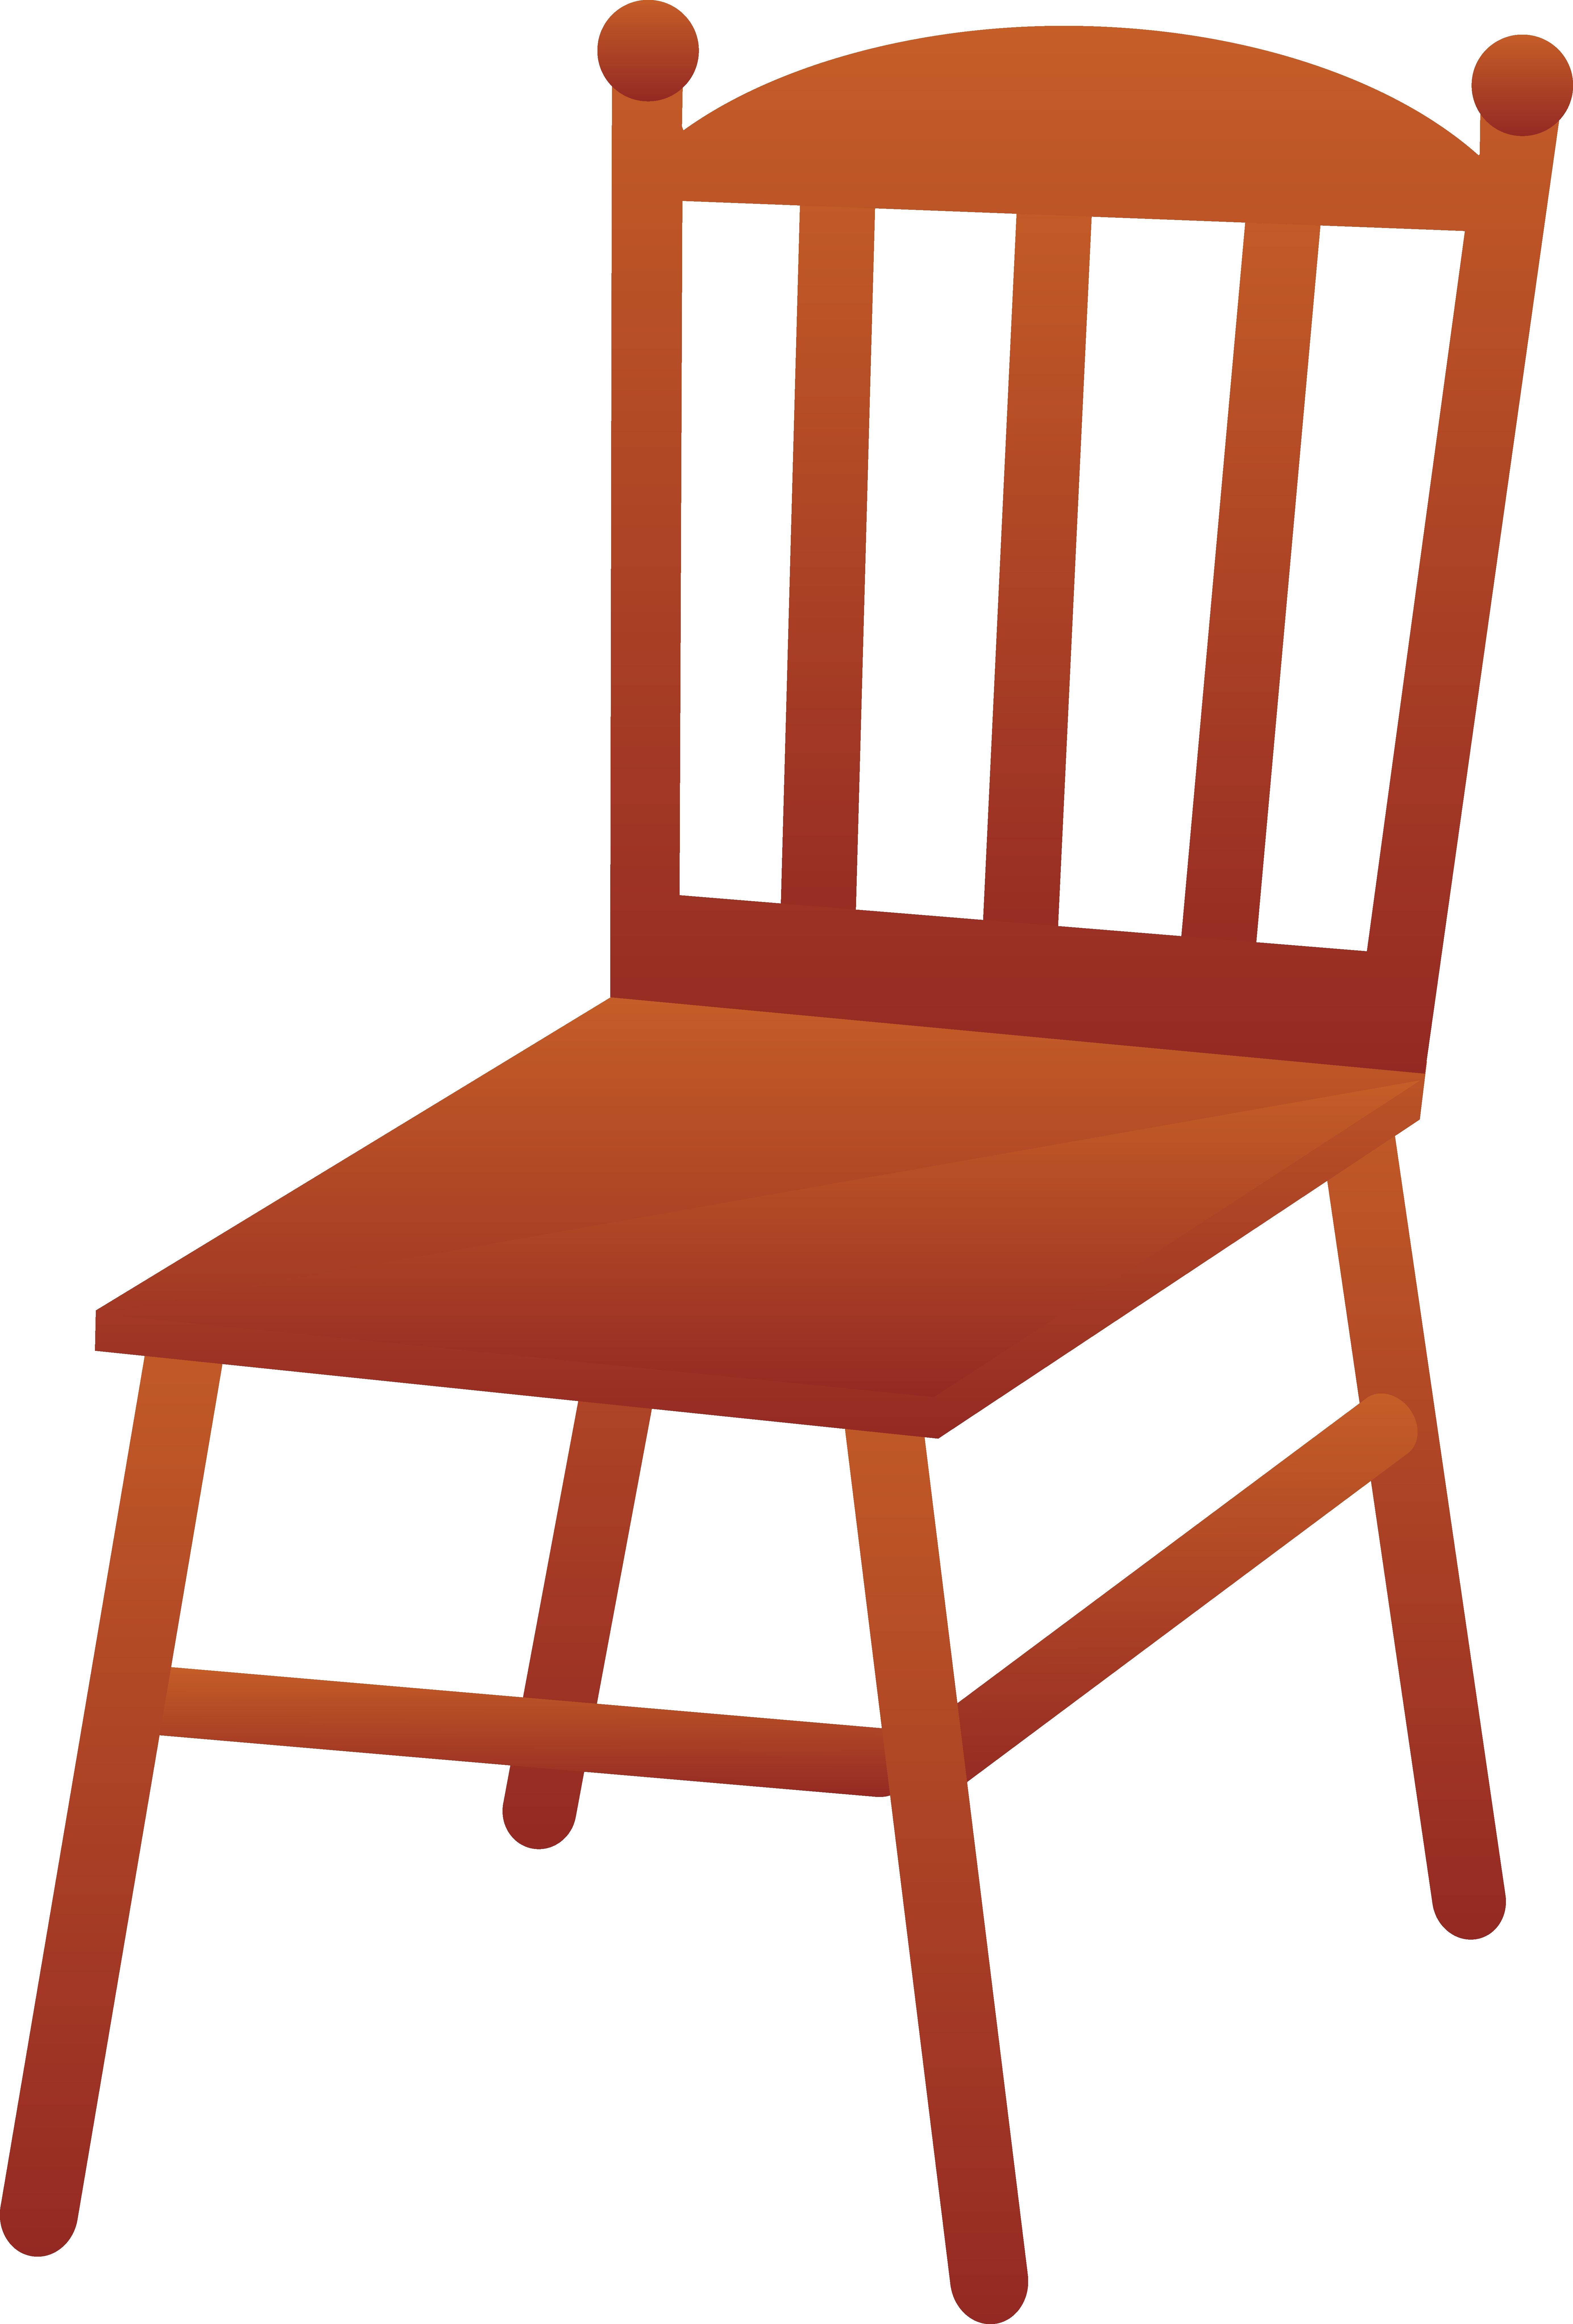 Chair clipart photo jpg transparent library Brown Wooden Chair - Free Clip Art jpg transparent library